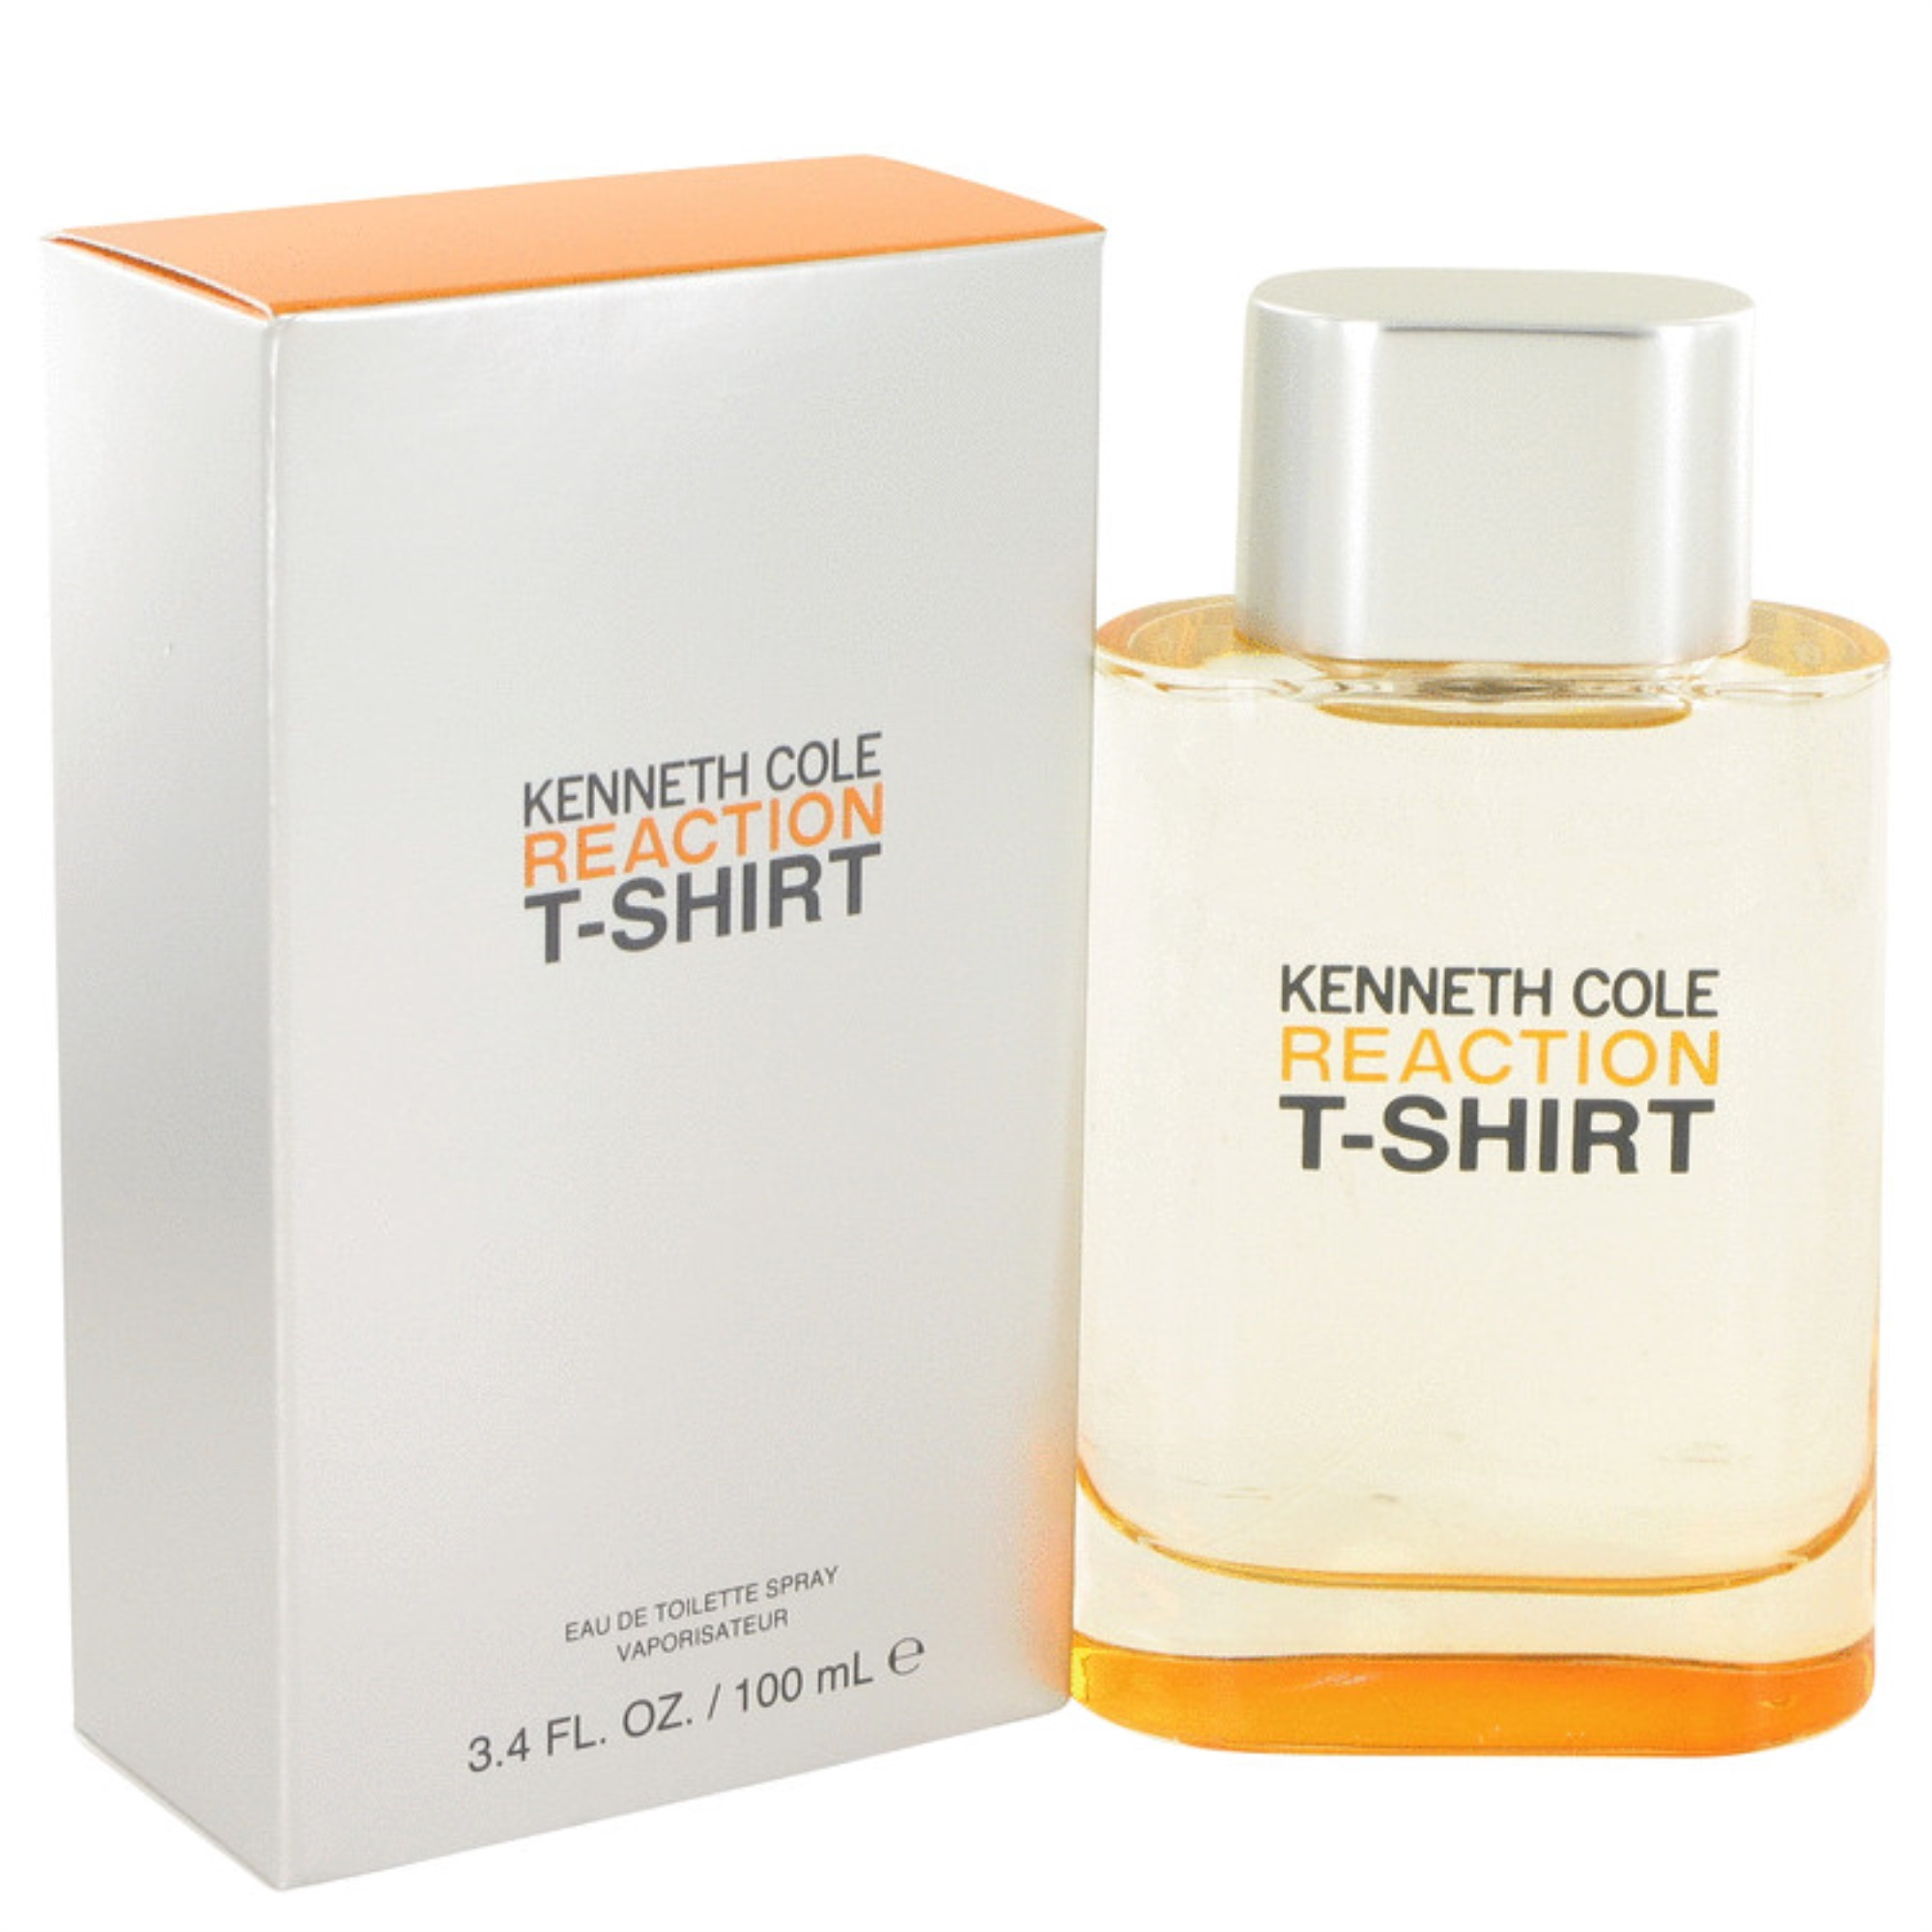 Kenneth Cole Reaction T-Shirt Cologne, 3.4 oz Eau De Toilette Spray - image 1 of 3